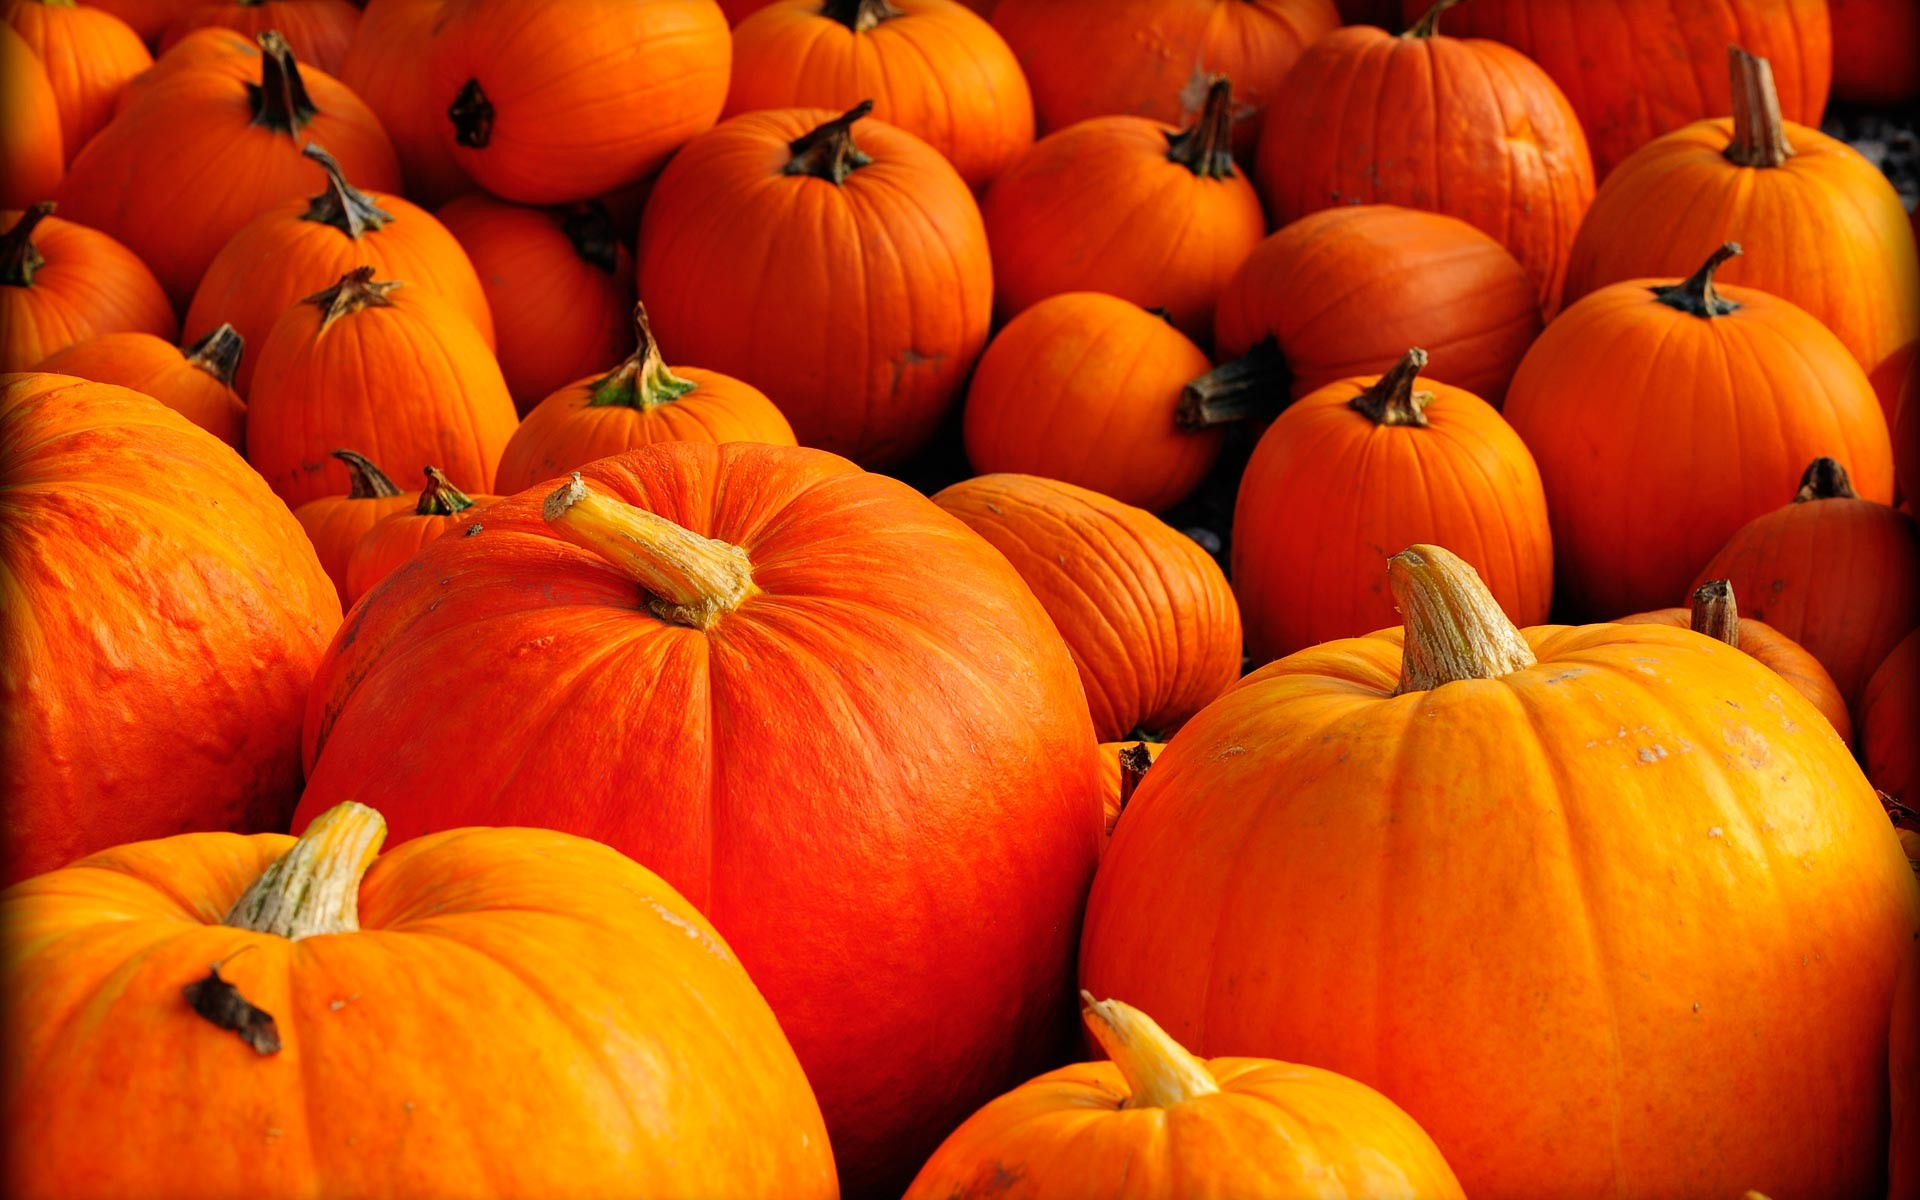 fall desktop wallpaper pumpkins – www.wallpapers-in-hd.com